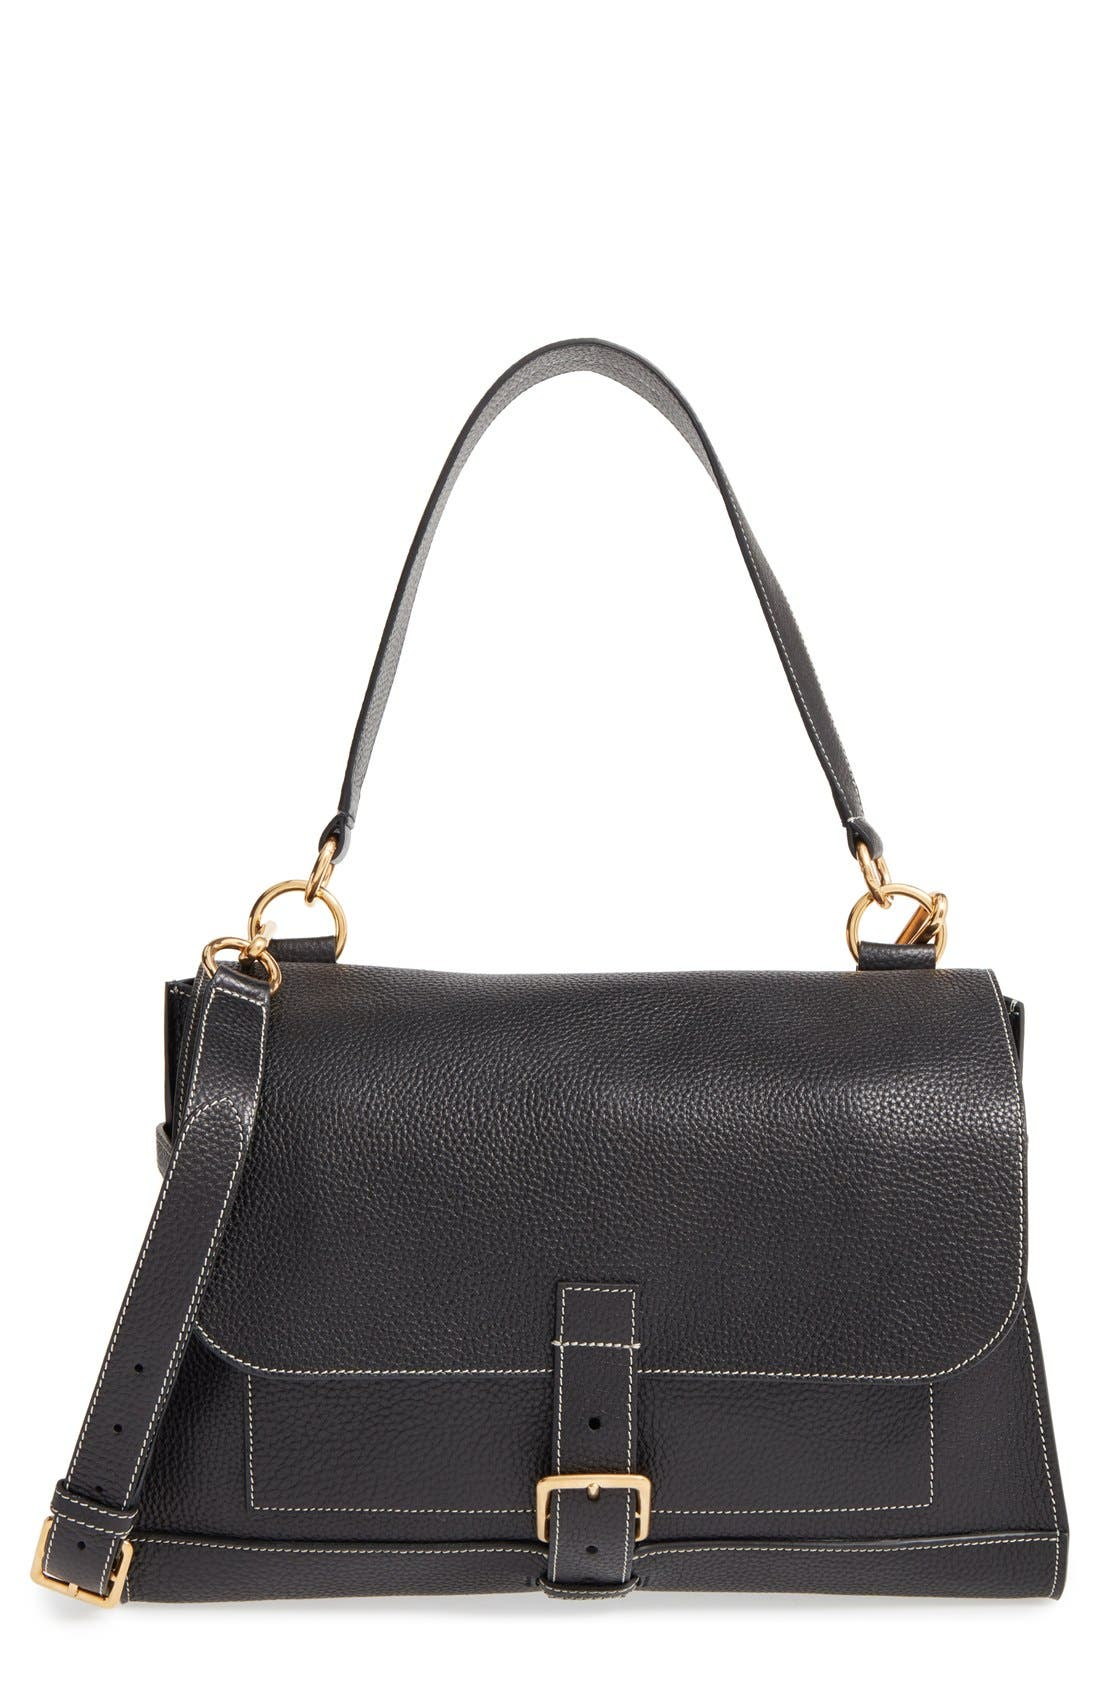 Main Image - Mulberry 'Small Buckle' Leather Shoulder Bag